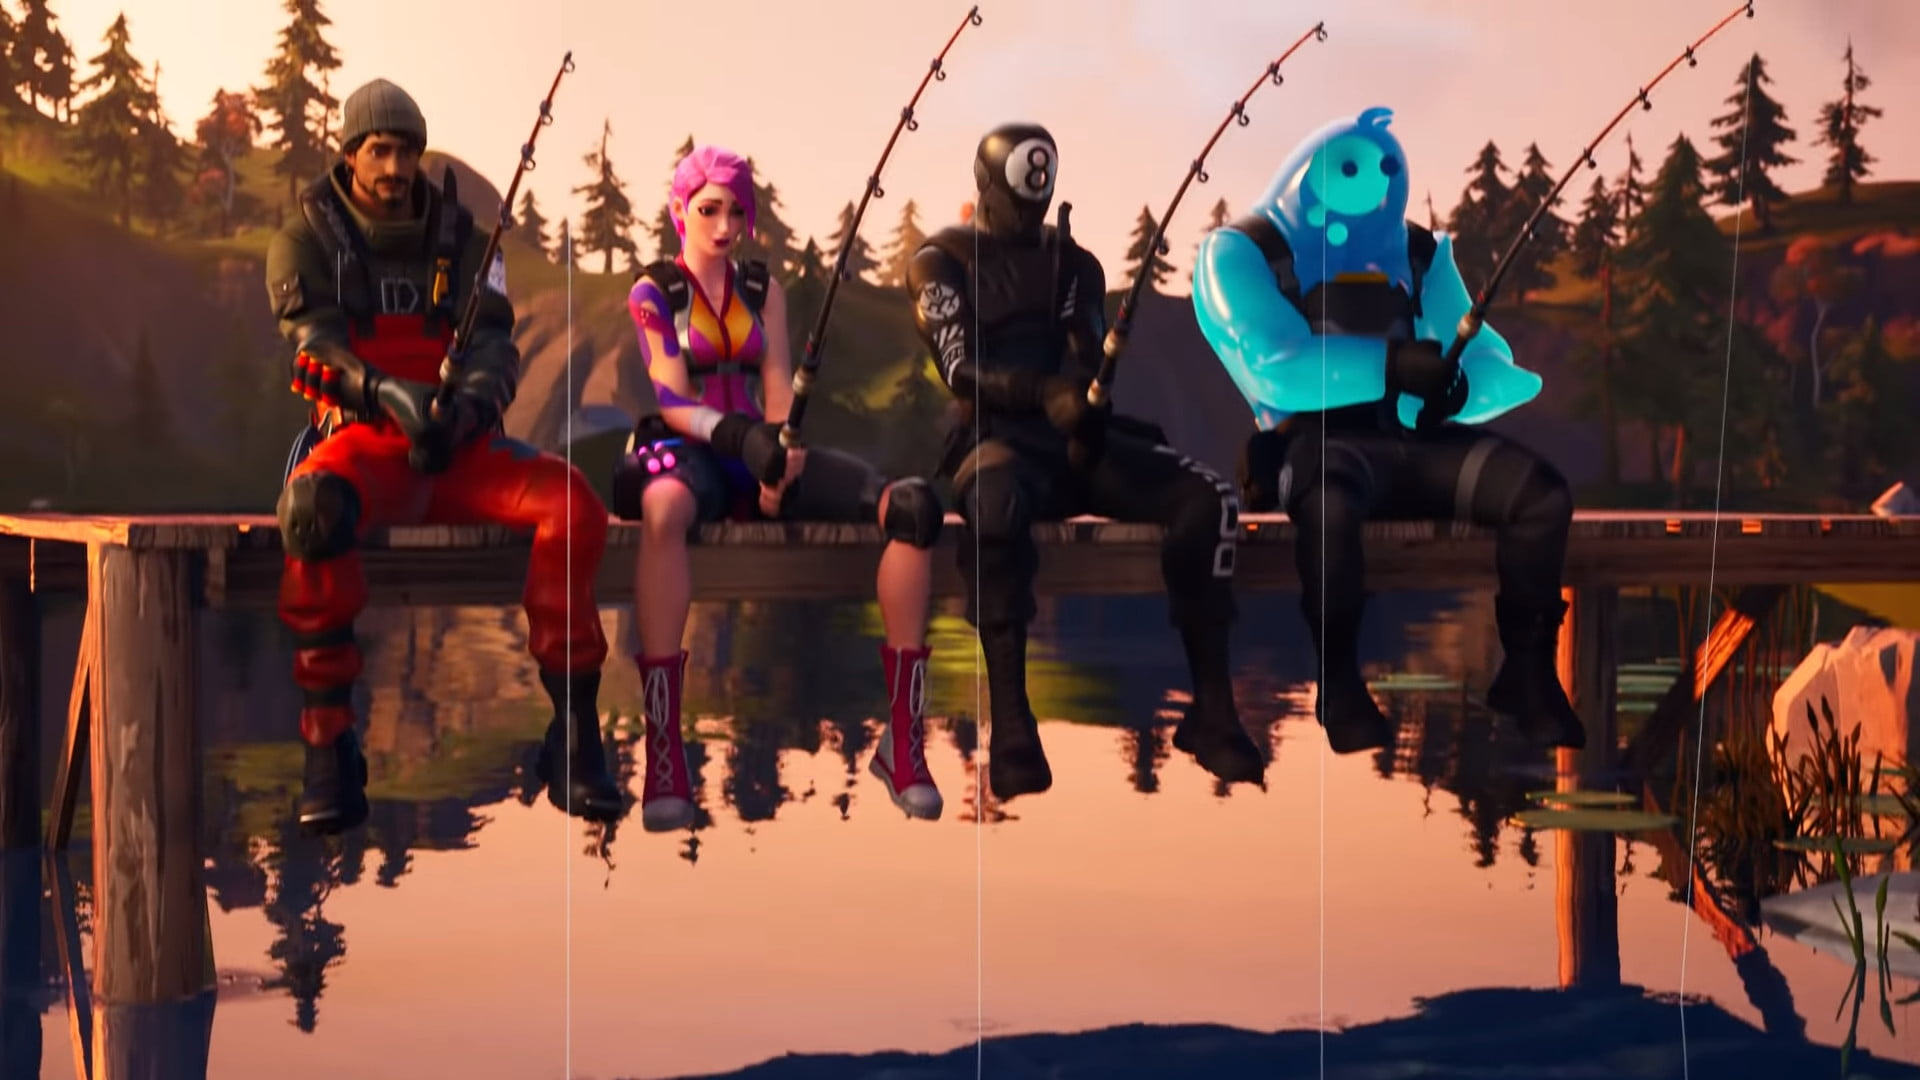 Fortnite Chapter 2 Battle Pass Explained Hd Wallpapers Of Outfits Supertab Themes